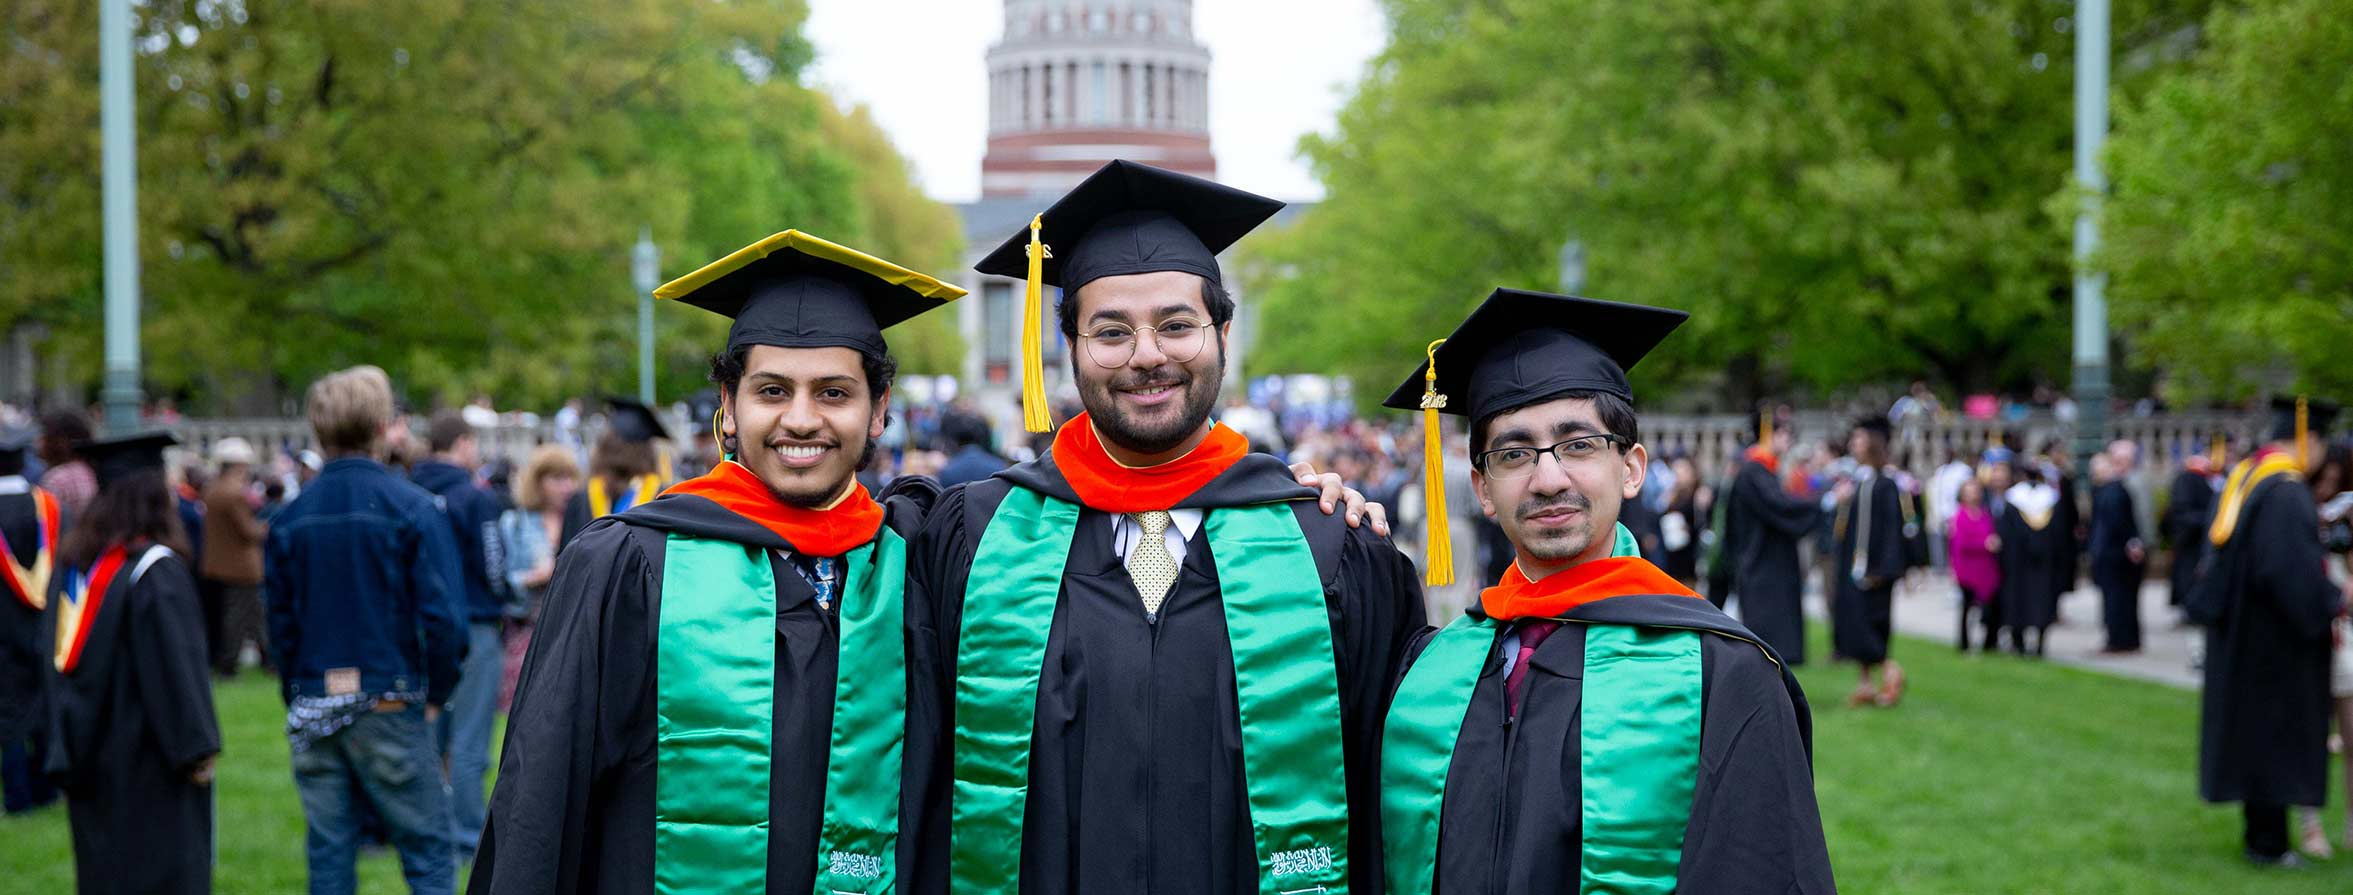 Three students take a picture in cap and gowns during commencement